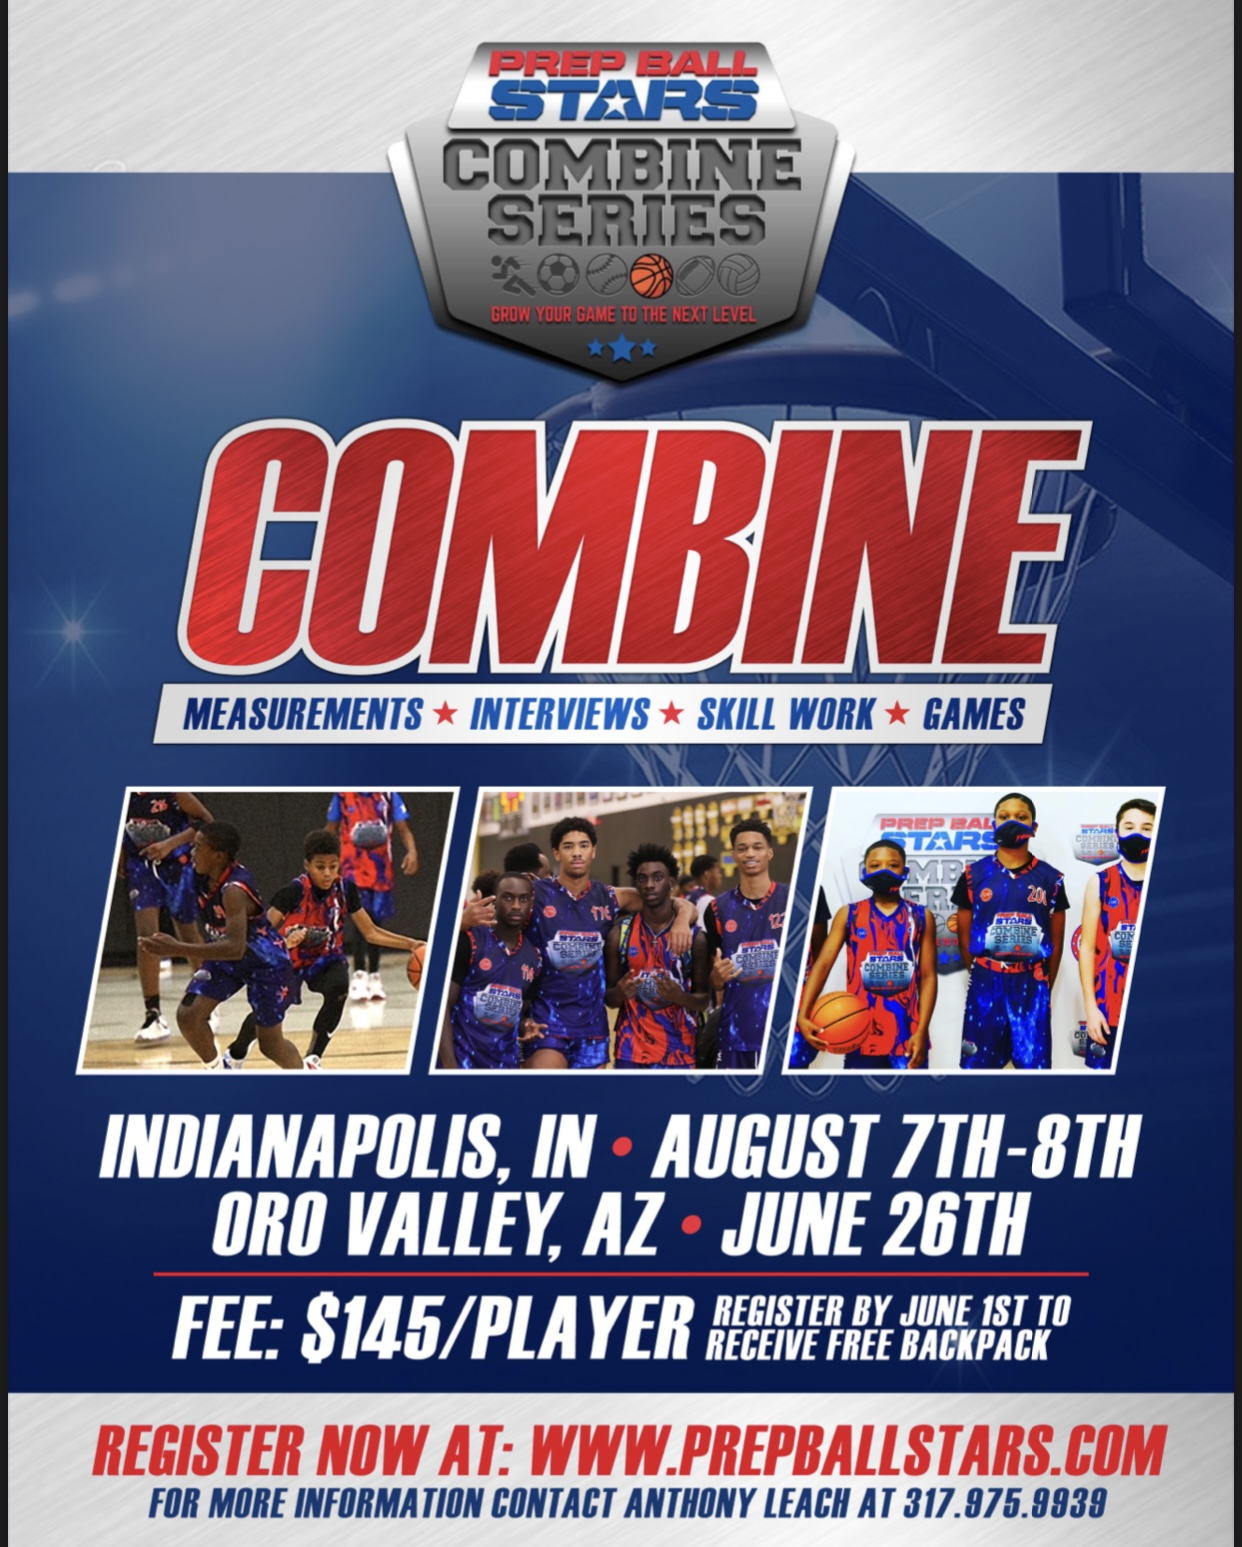 PREP BALL STARS COMBINE is August 7th and August 8th!